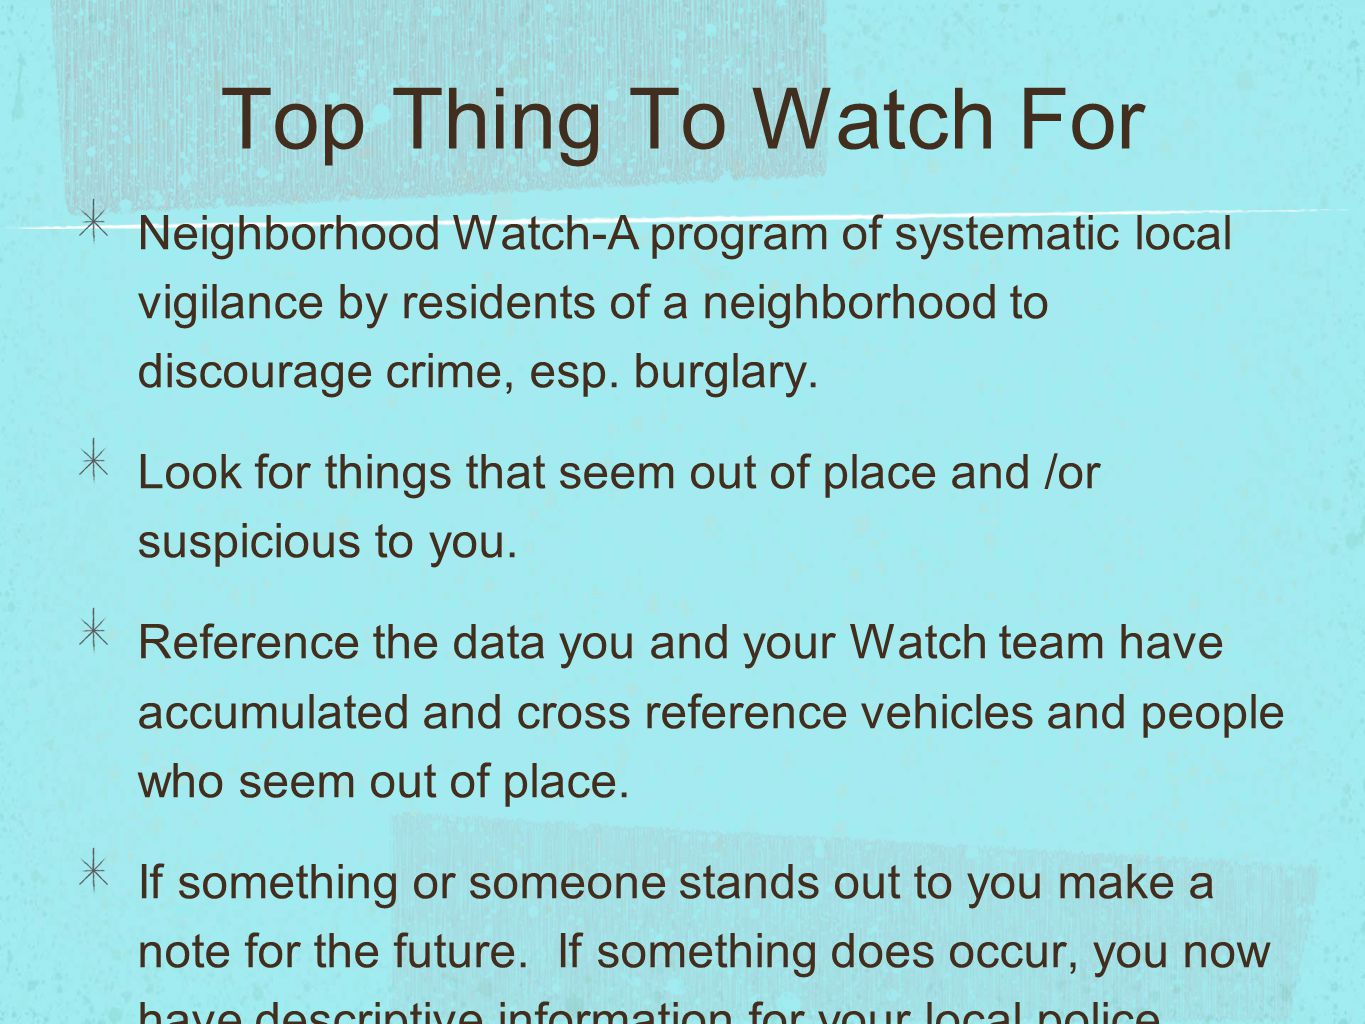 Top Thing To Watch For Neighborhood Watch-A program of systematic local vigilance by residents of a neighborhood to discourage crime, esp.